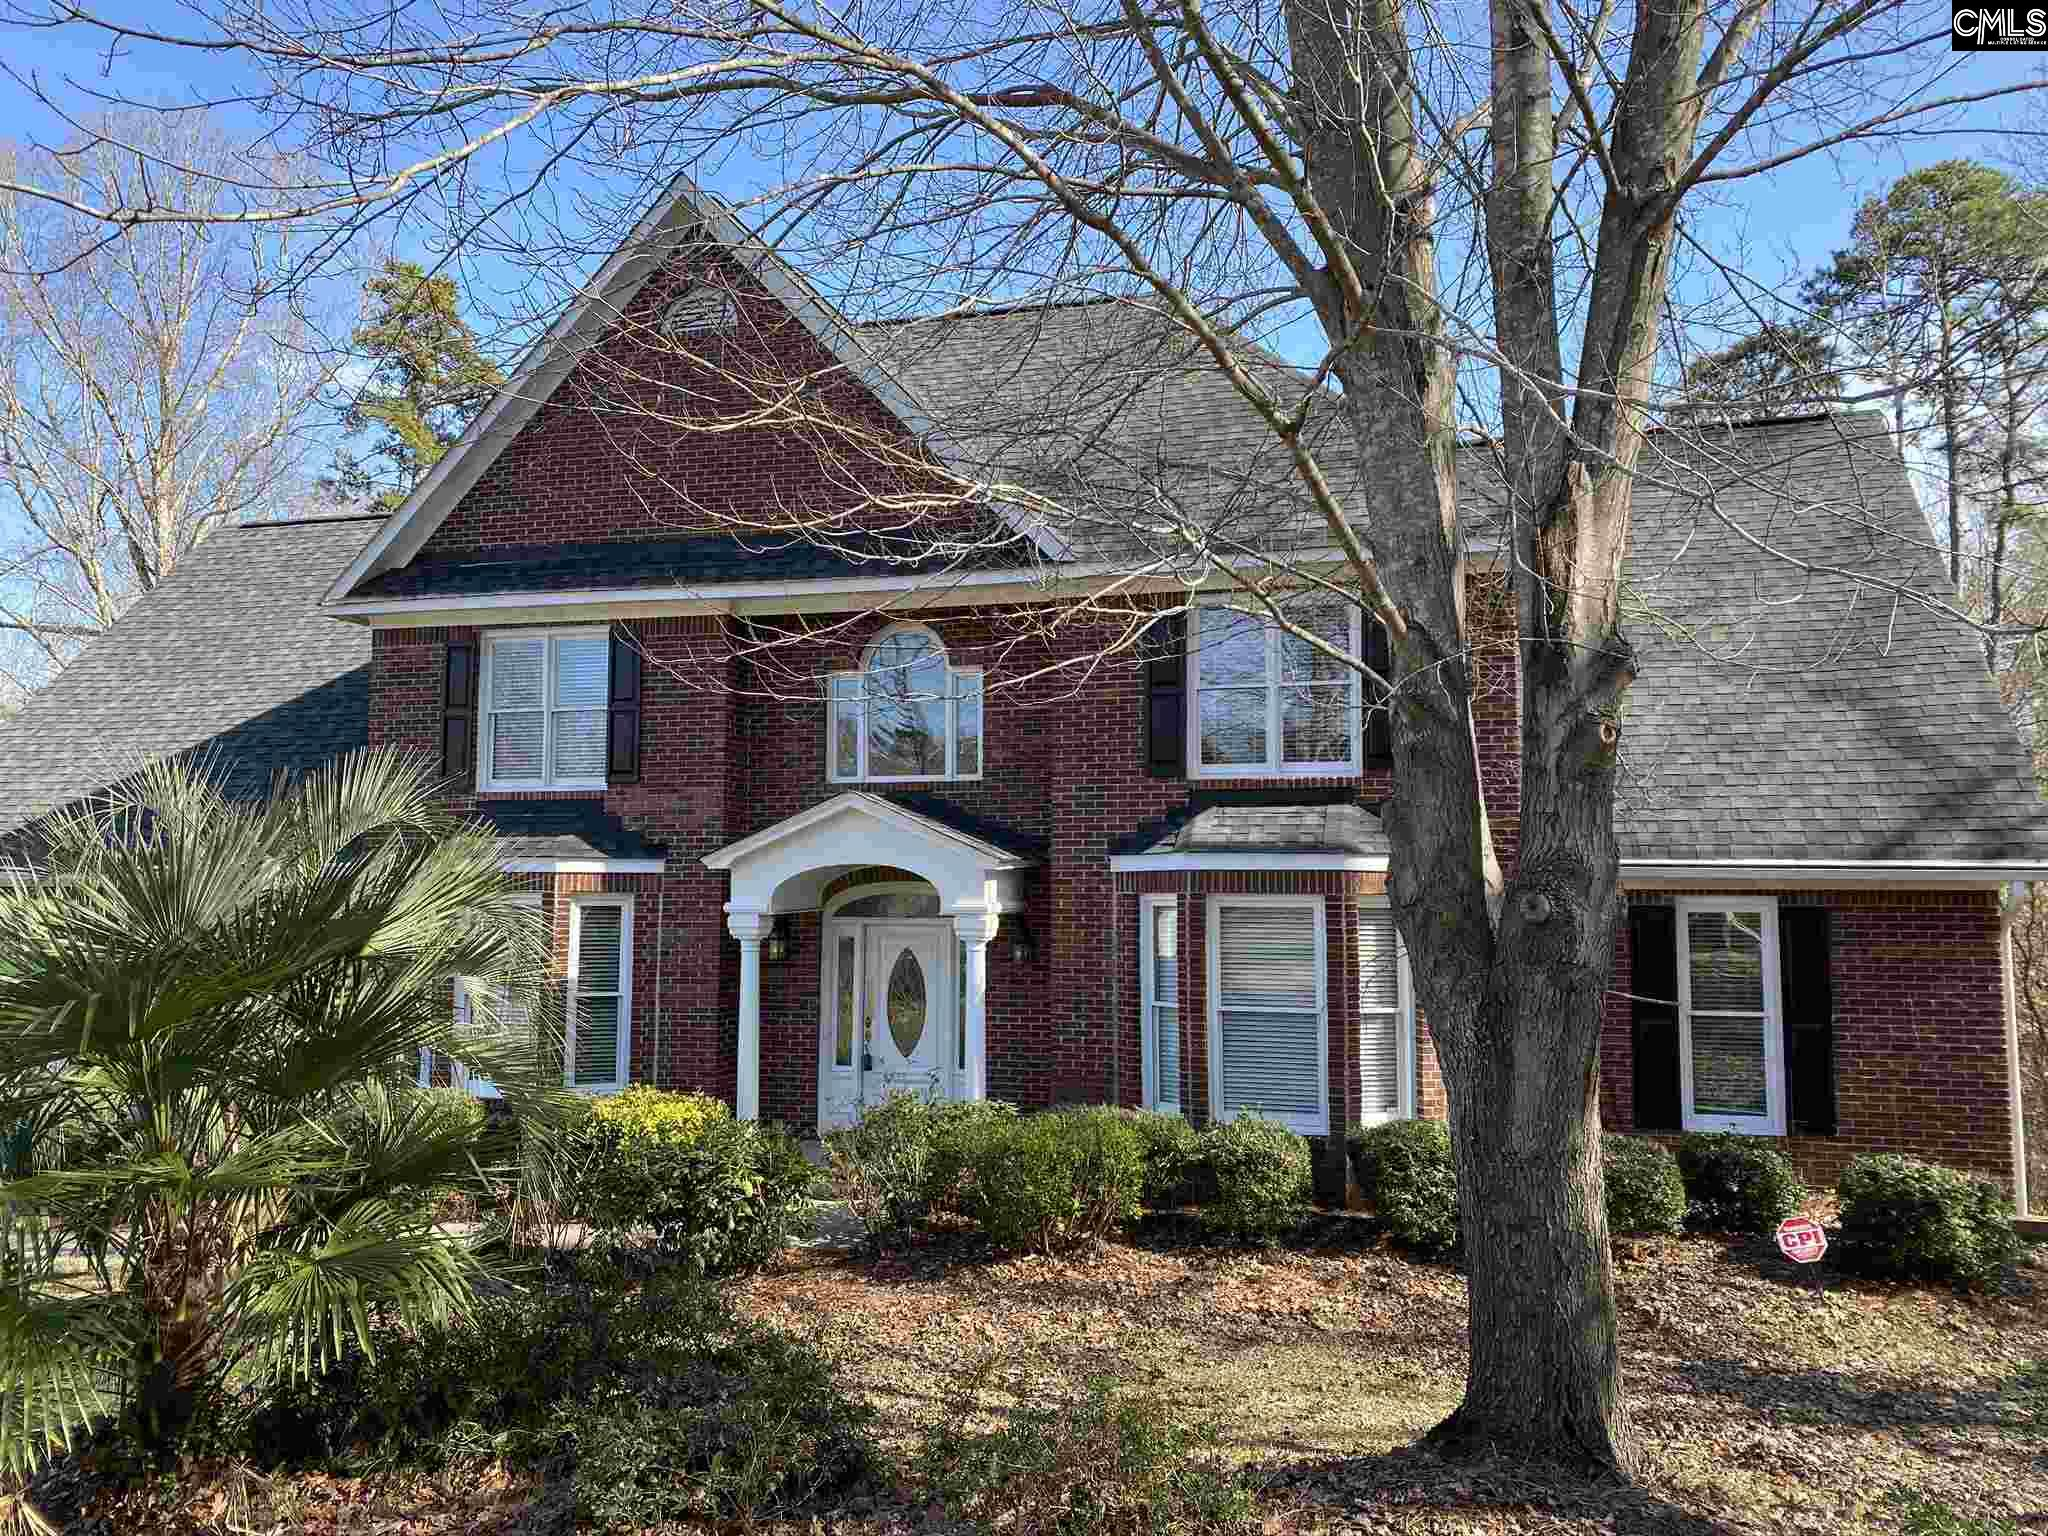 207 Misty Oaks Lexington, SC 29072